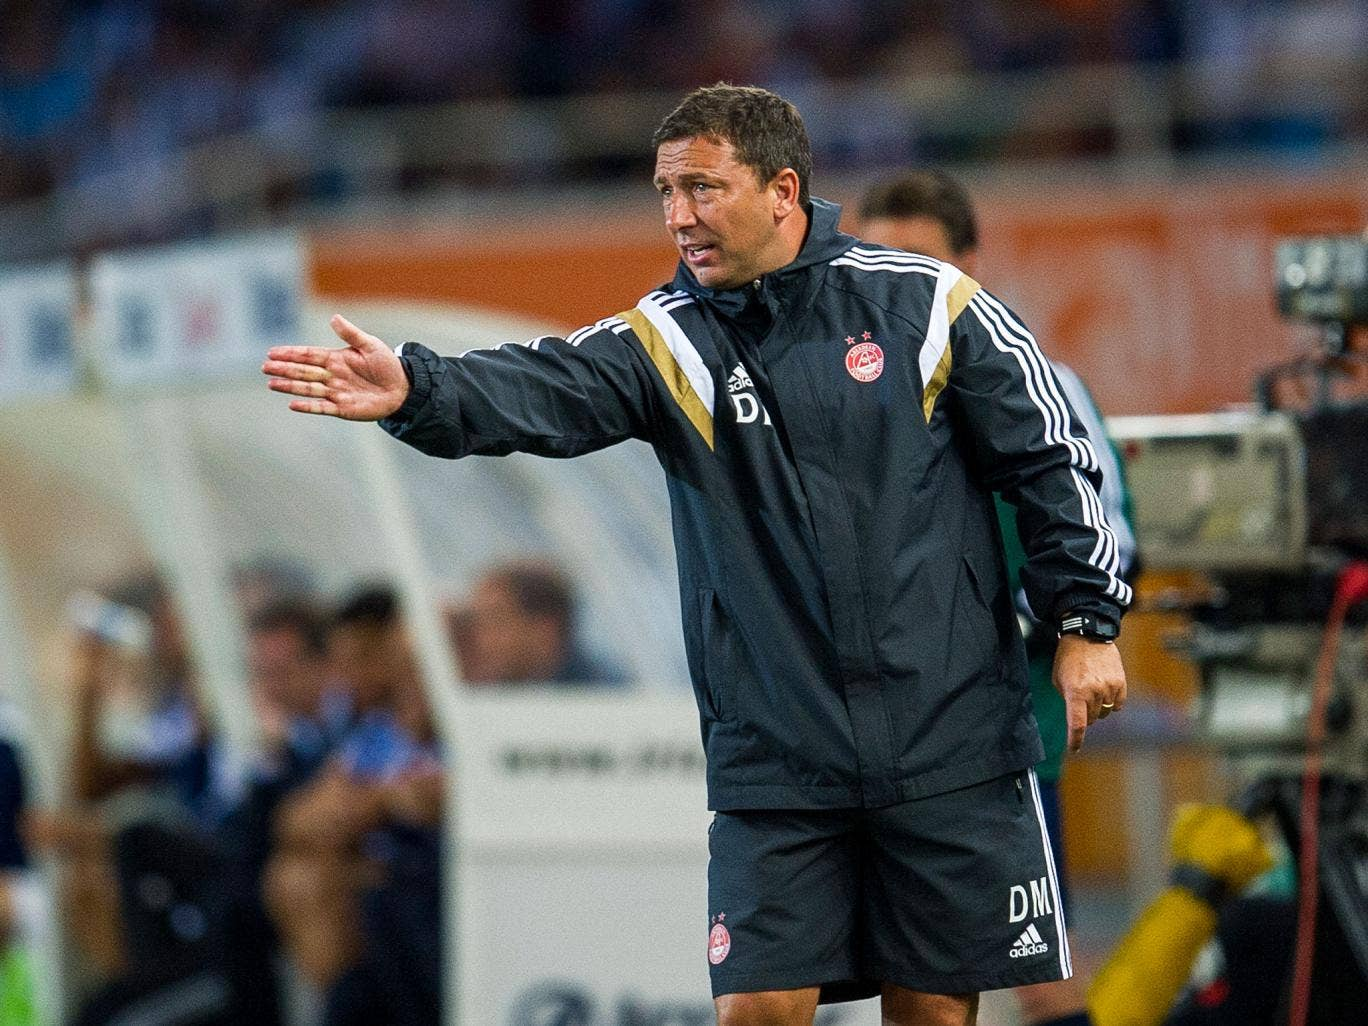 Dereck McInnes  gestures from the sidelines during Aberdeen's 2-0 loss to Real Sociedad